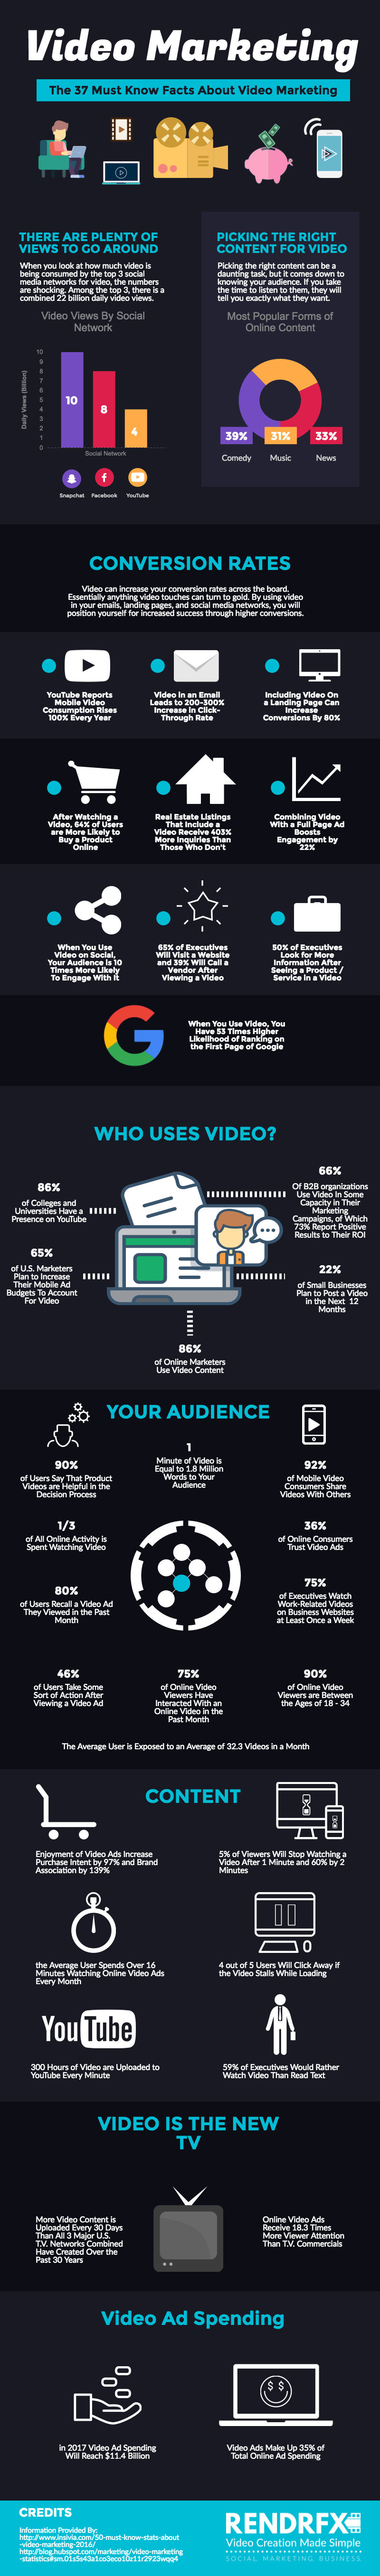 37 Key Statistics for Video Marketing - Infographic